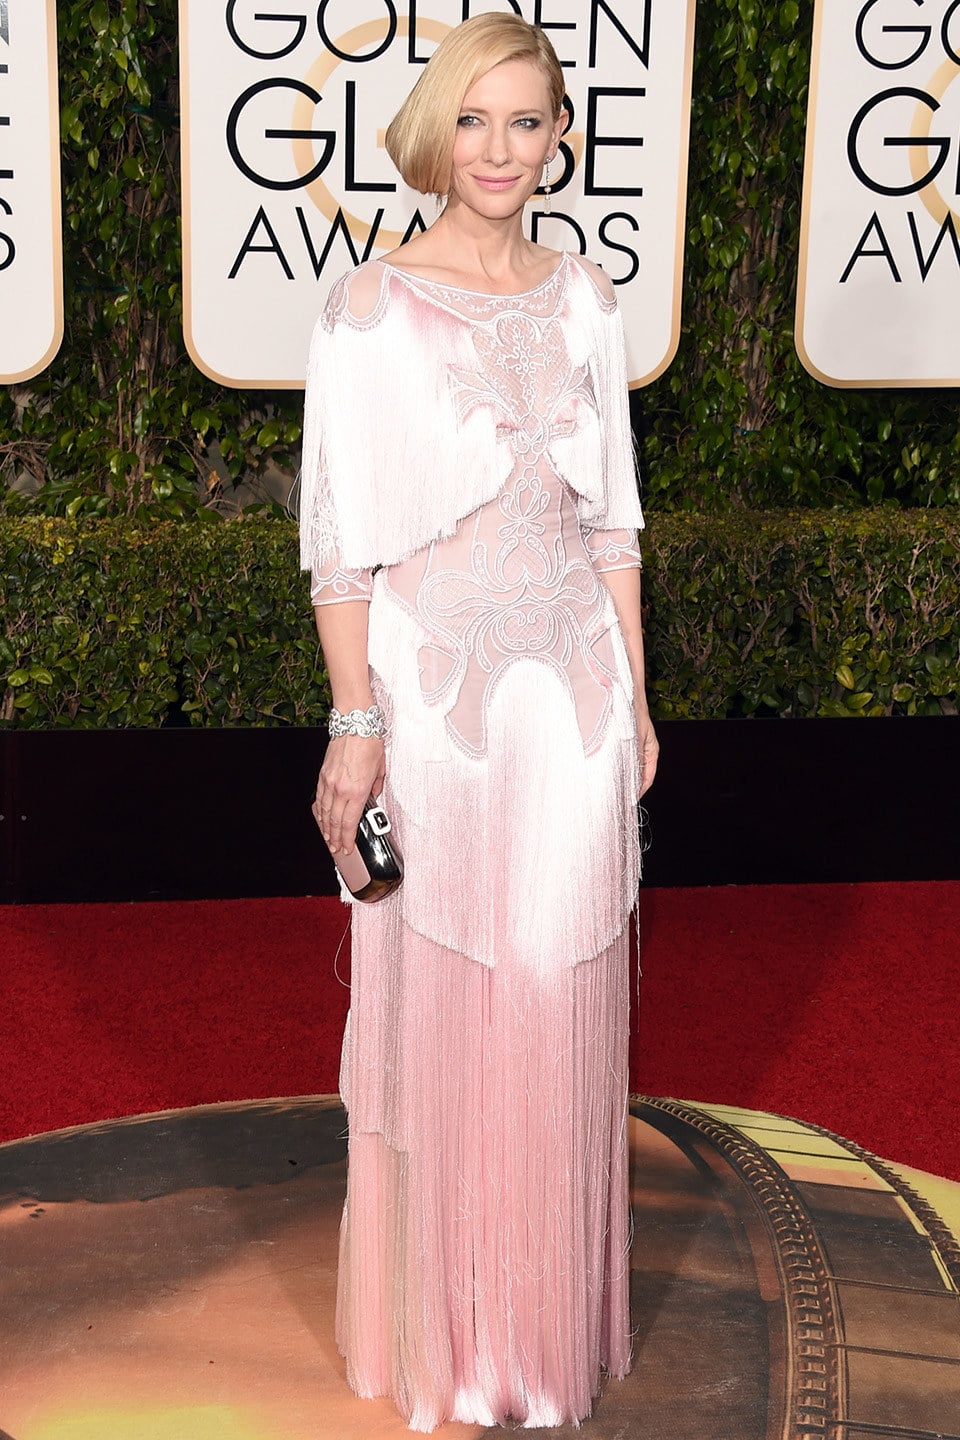 10. Cate Blanchett in Givenchy